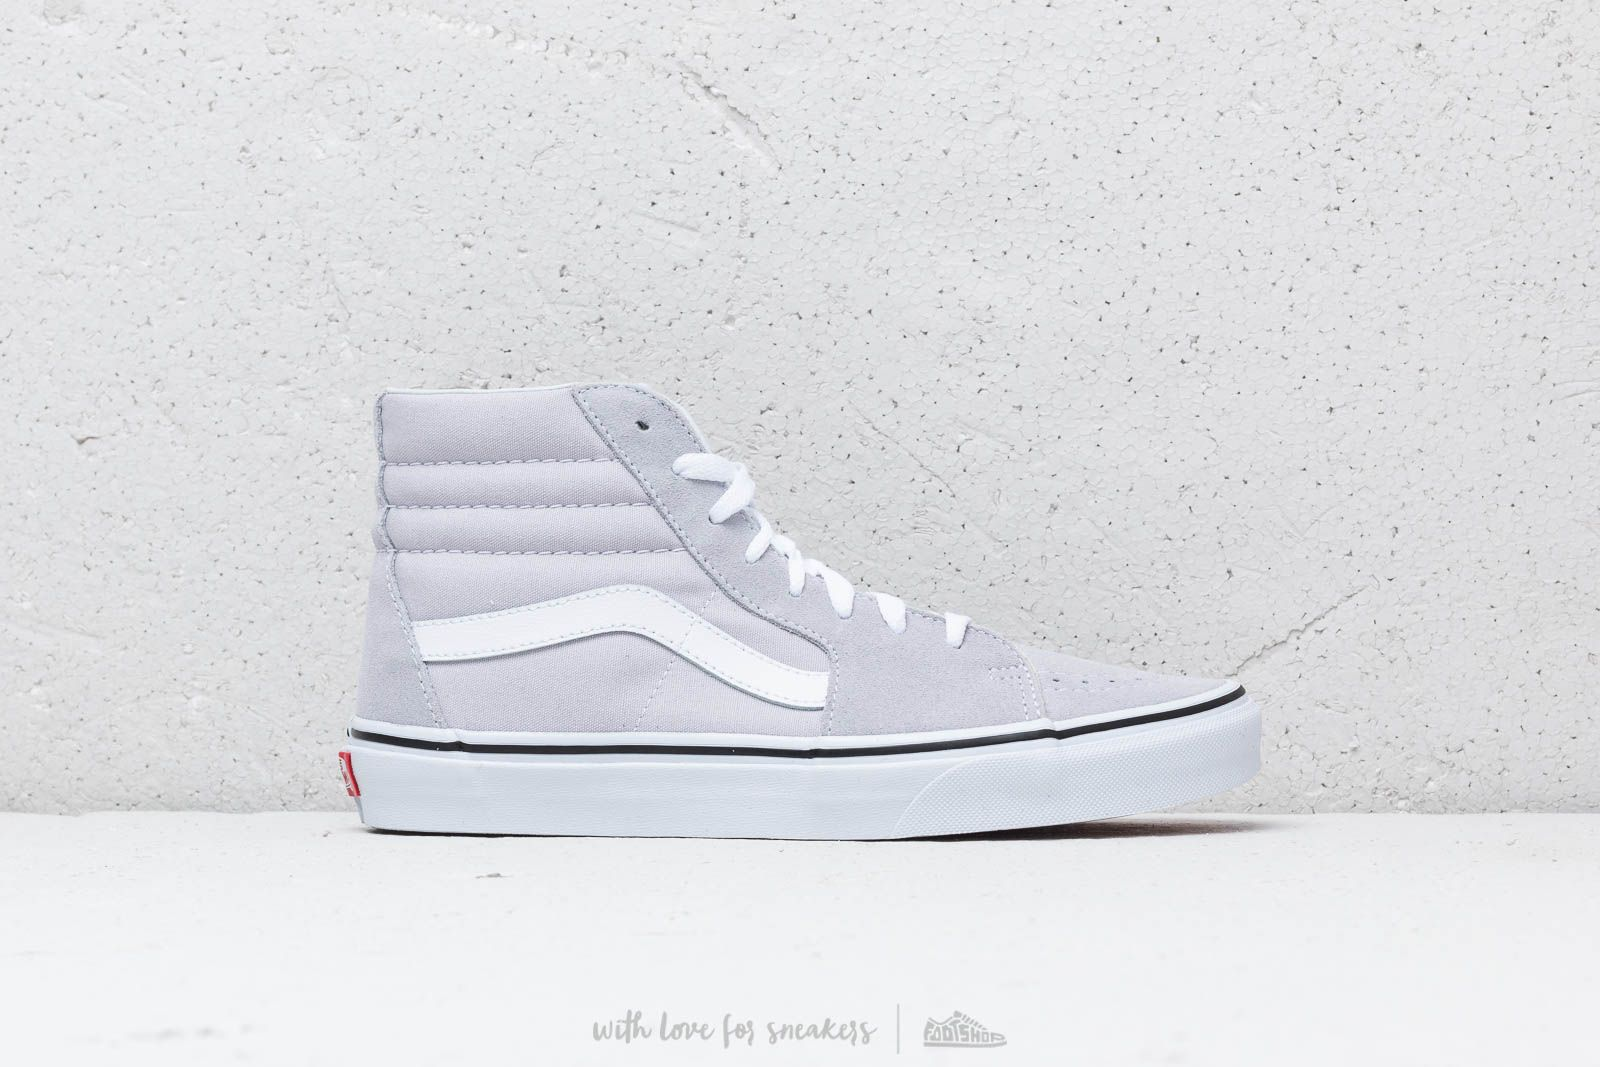 Vans Hi Sk8 WhiteFootshop True Gray Dawn TlFK3uc1J